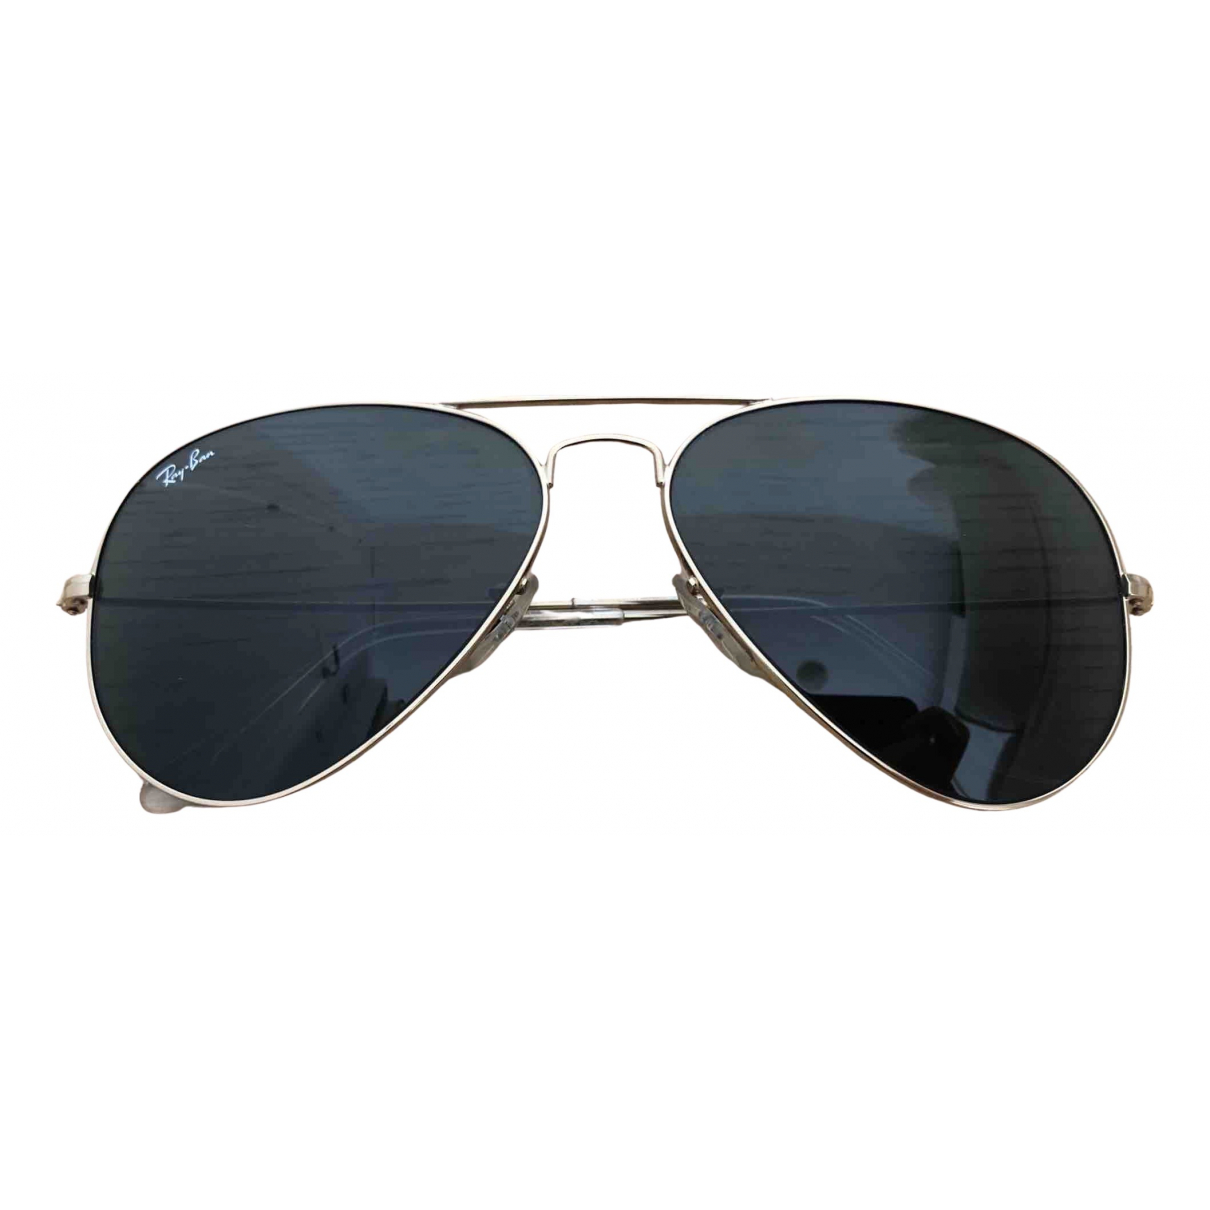 Ray-ban Aviator Gold Metal Sunglasses for Women N